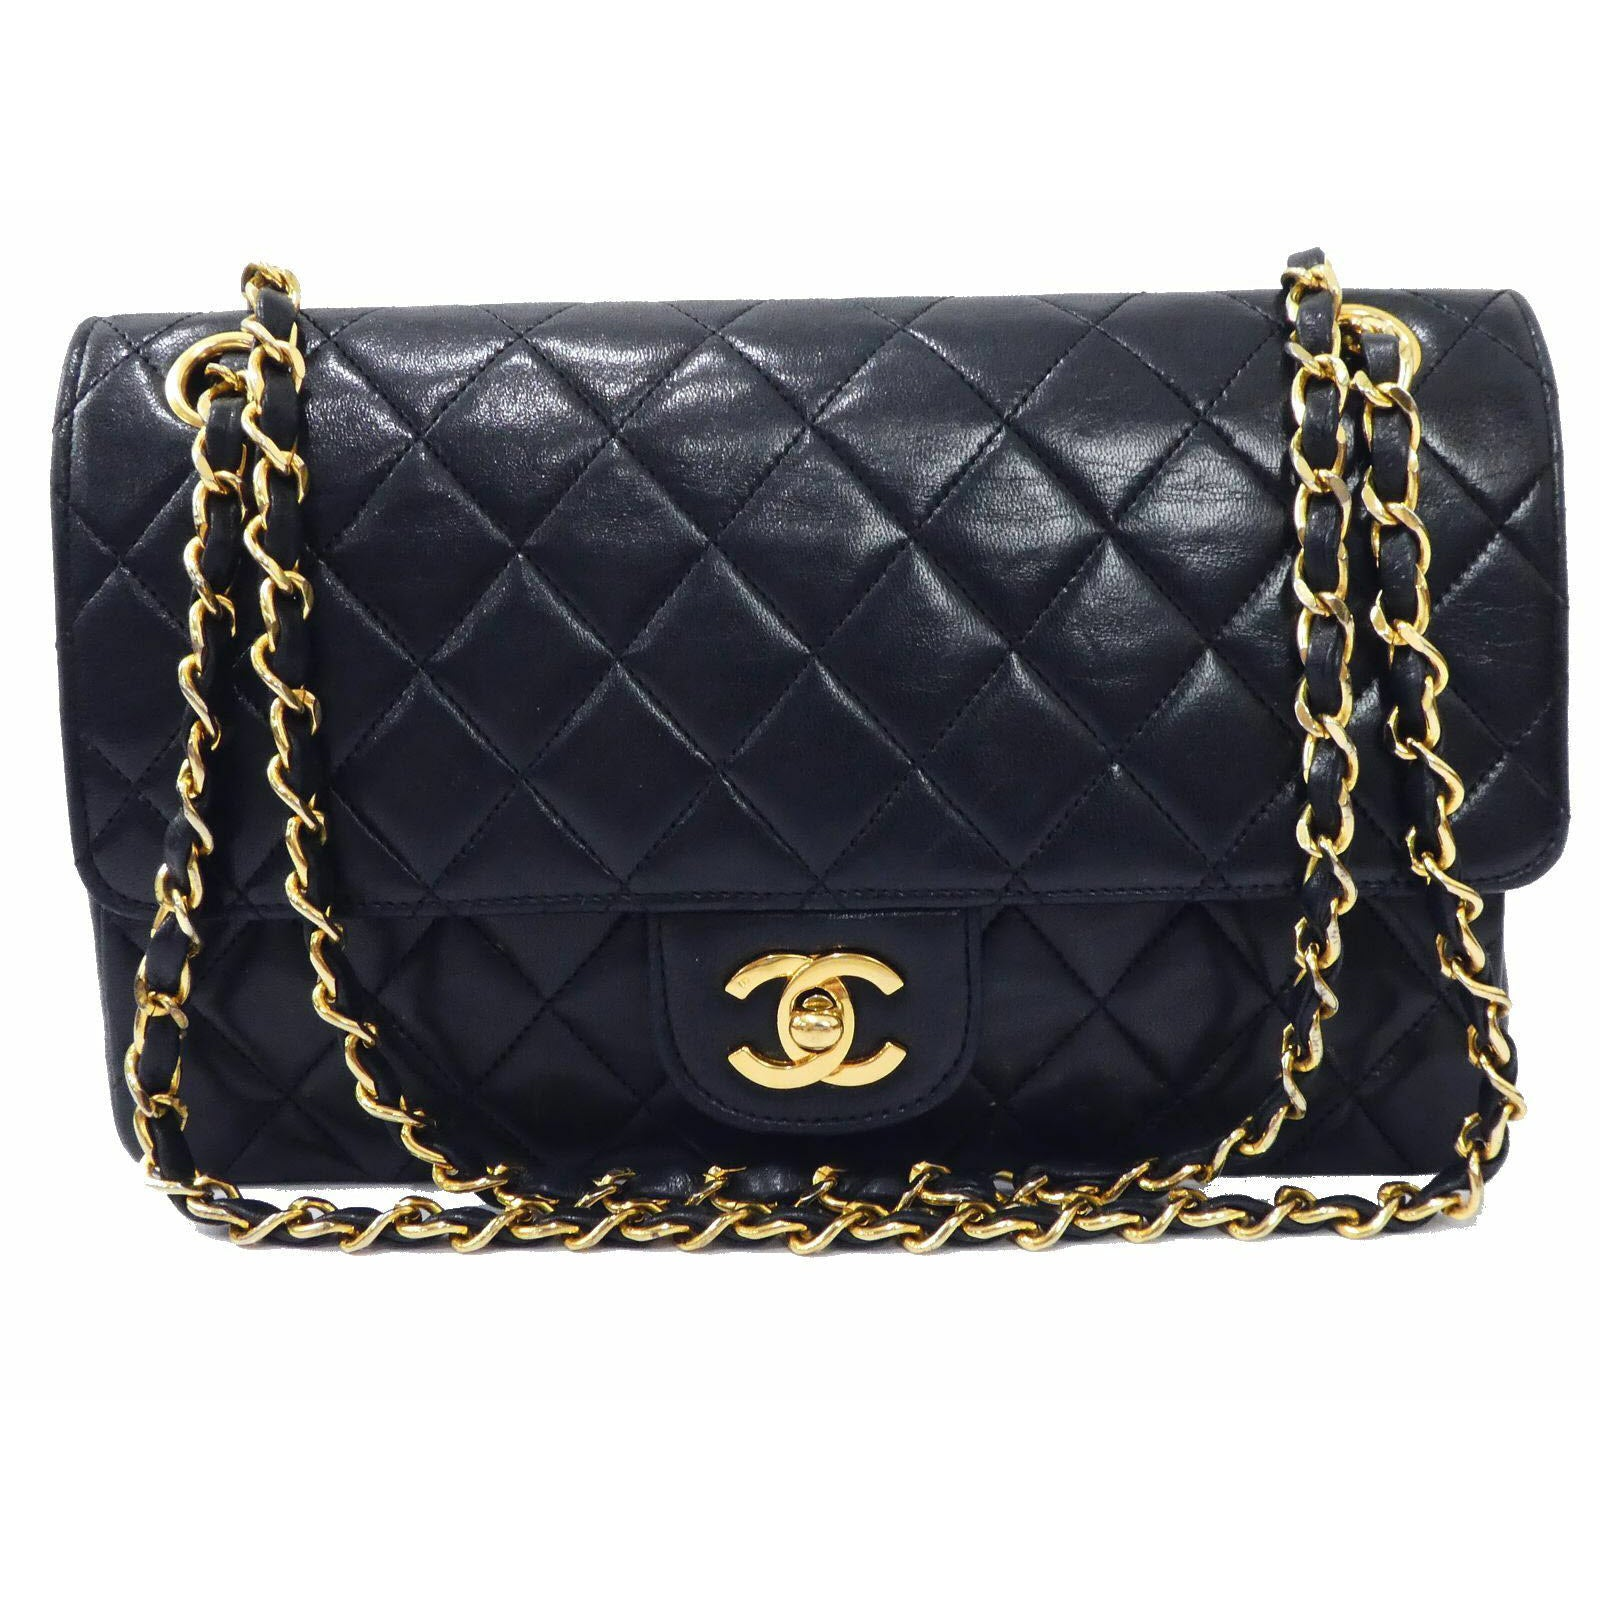 CHANEL Lambskin Medium Double Flap Bag Black